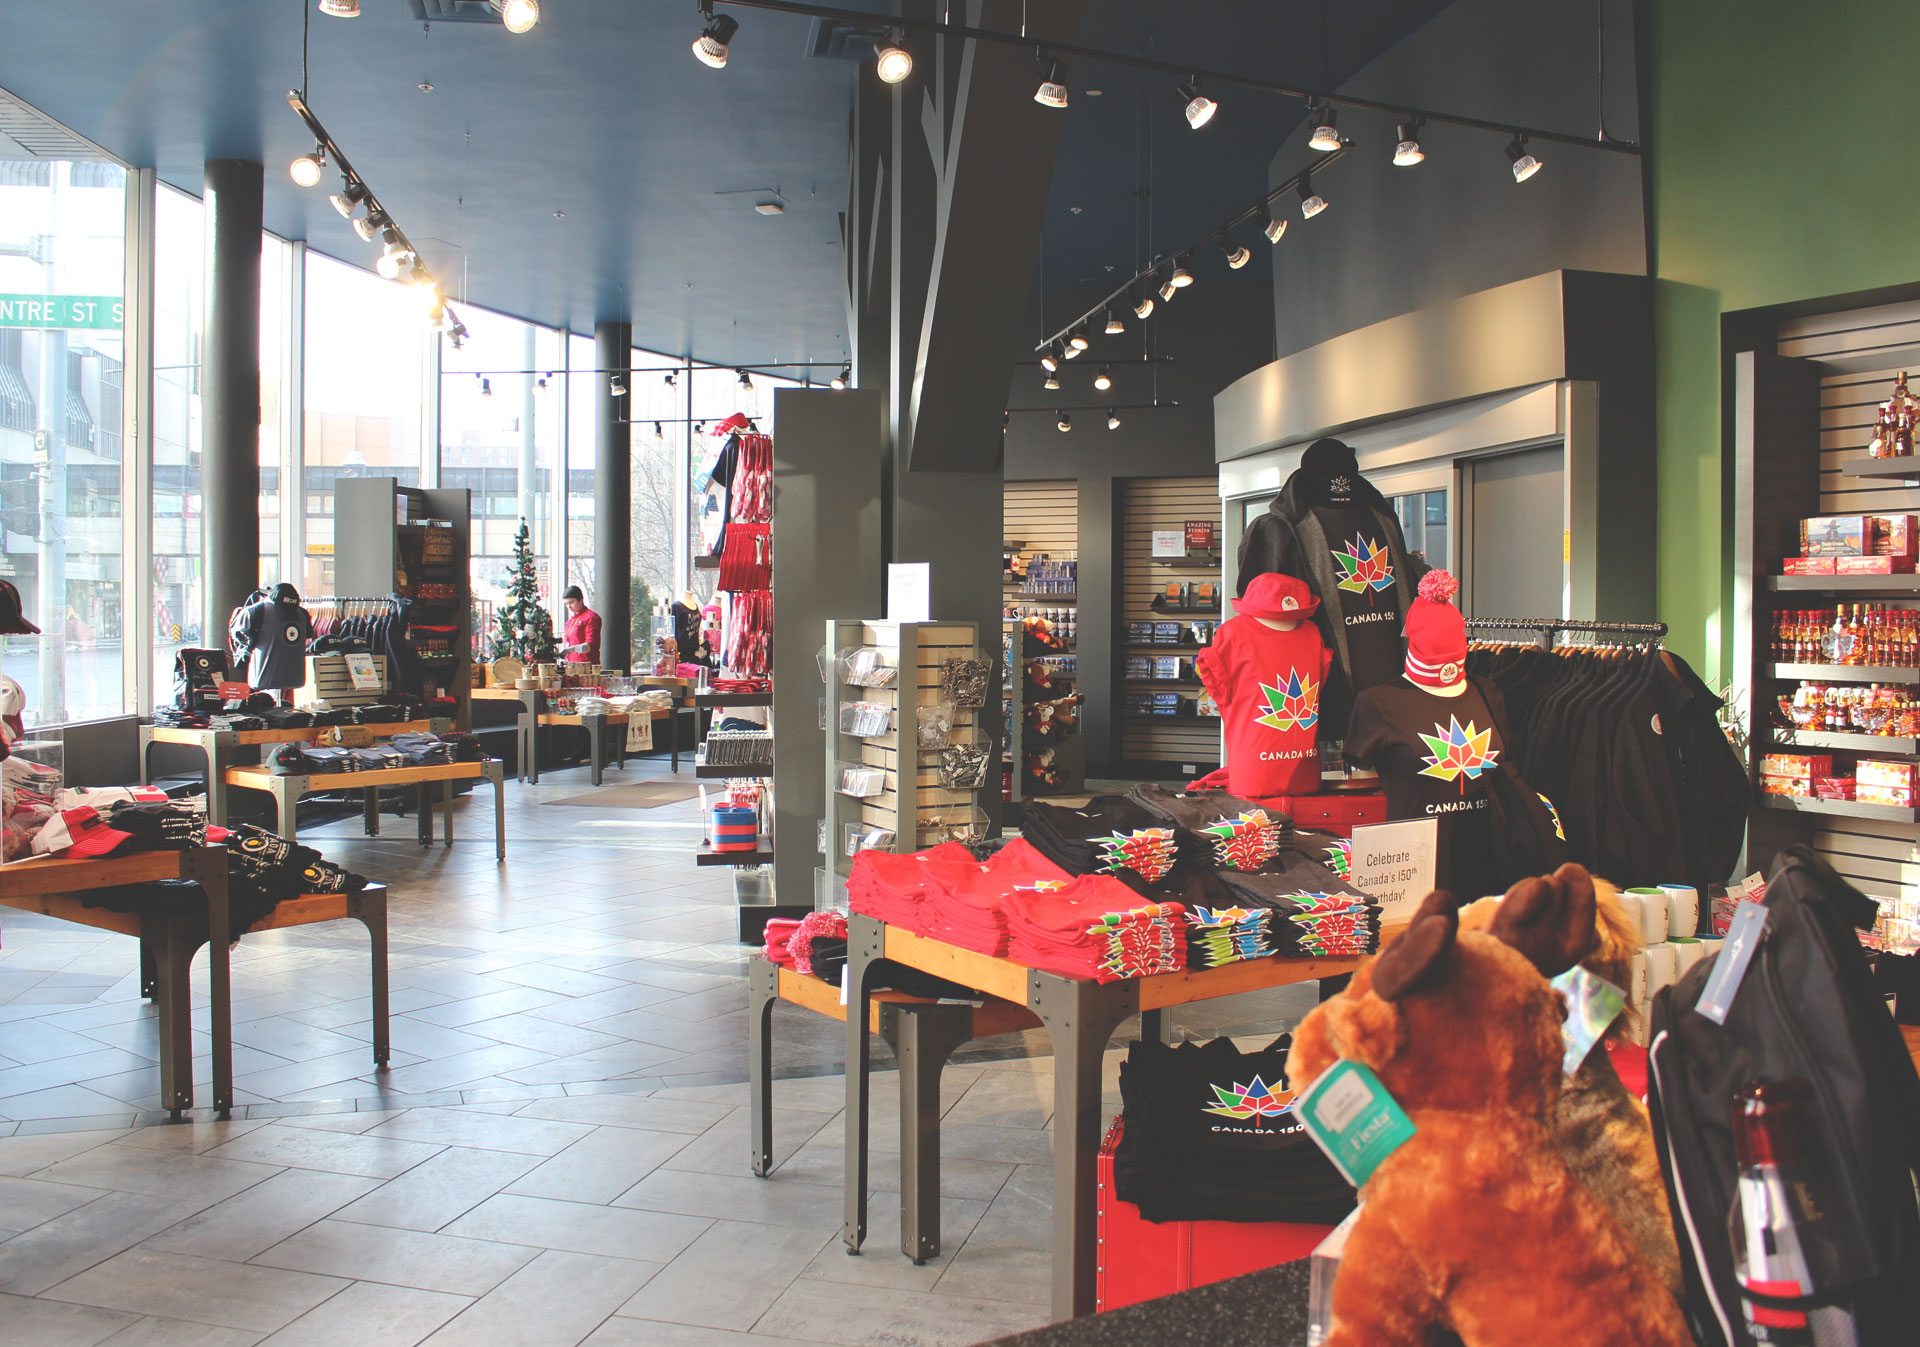 The Gift Shop at the base of the Calgary Tower.